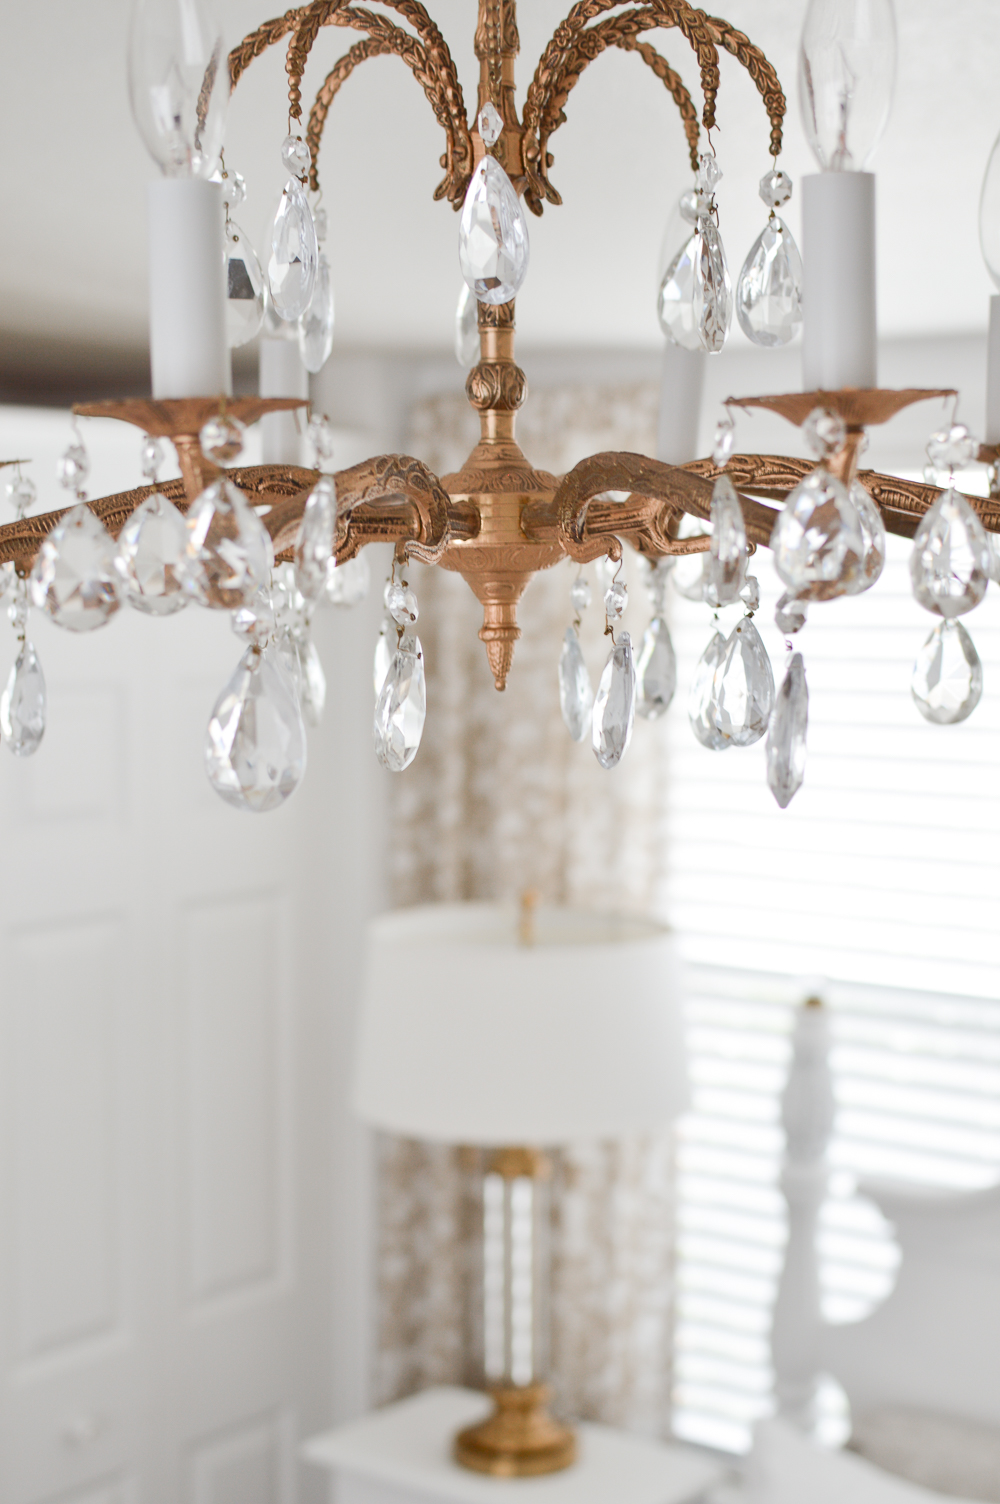 How To Pick The Perfect Lighting - Light Fixture Guidelines & Tips at www.foxhollowcottage.com #sponsored with Lamps Plus